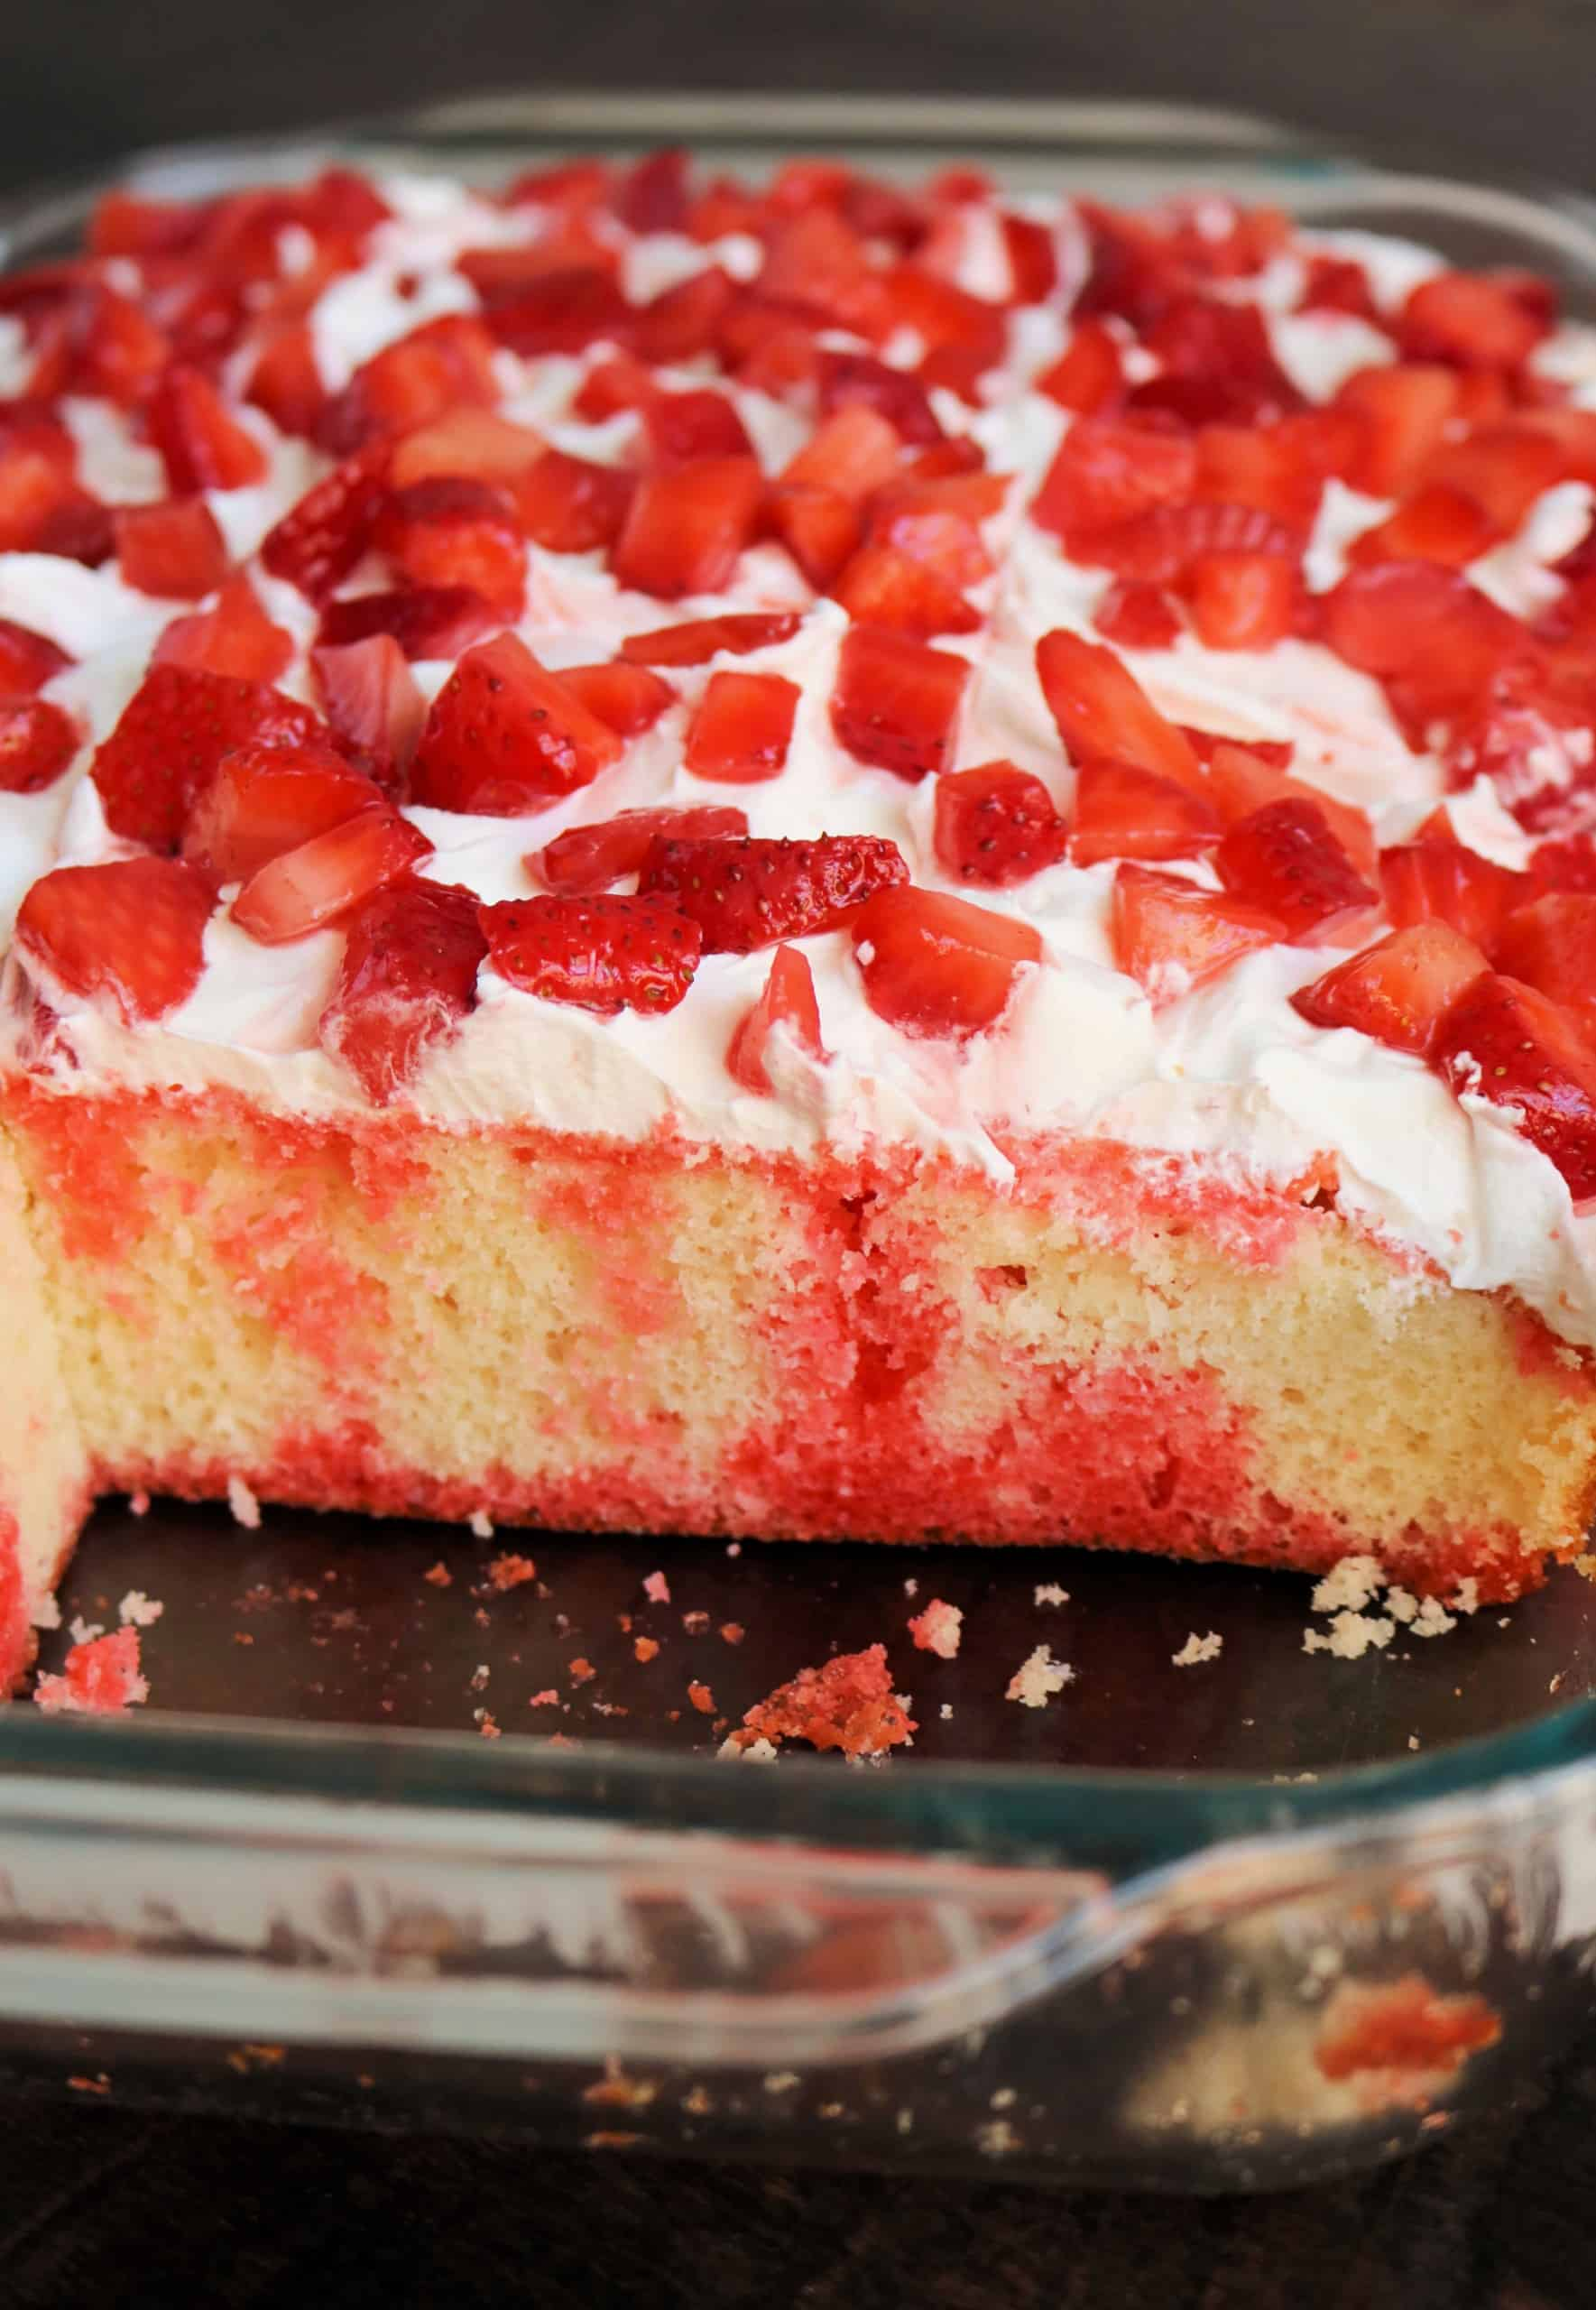 Try my Easy Strawberry Jello Poke Cake for a light and refreshing summer cake your family and friends will love! It's made with just 5 ingredients including fresh strawberries, strawberry jello mix, and whipped cream topping, and is so delicious! #strawberrypokecake #jellopokecake #pokecake #strawberriesandcream #dessert